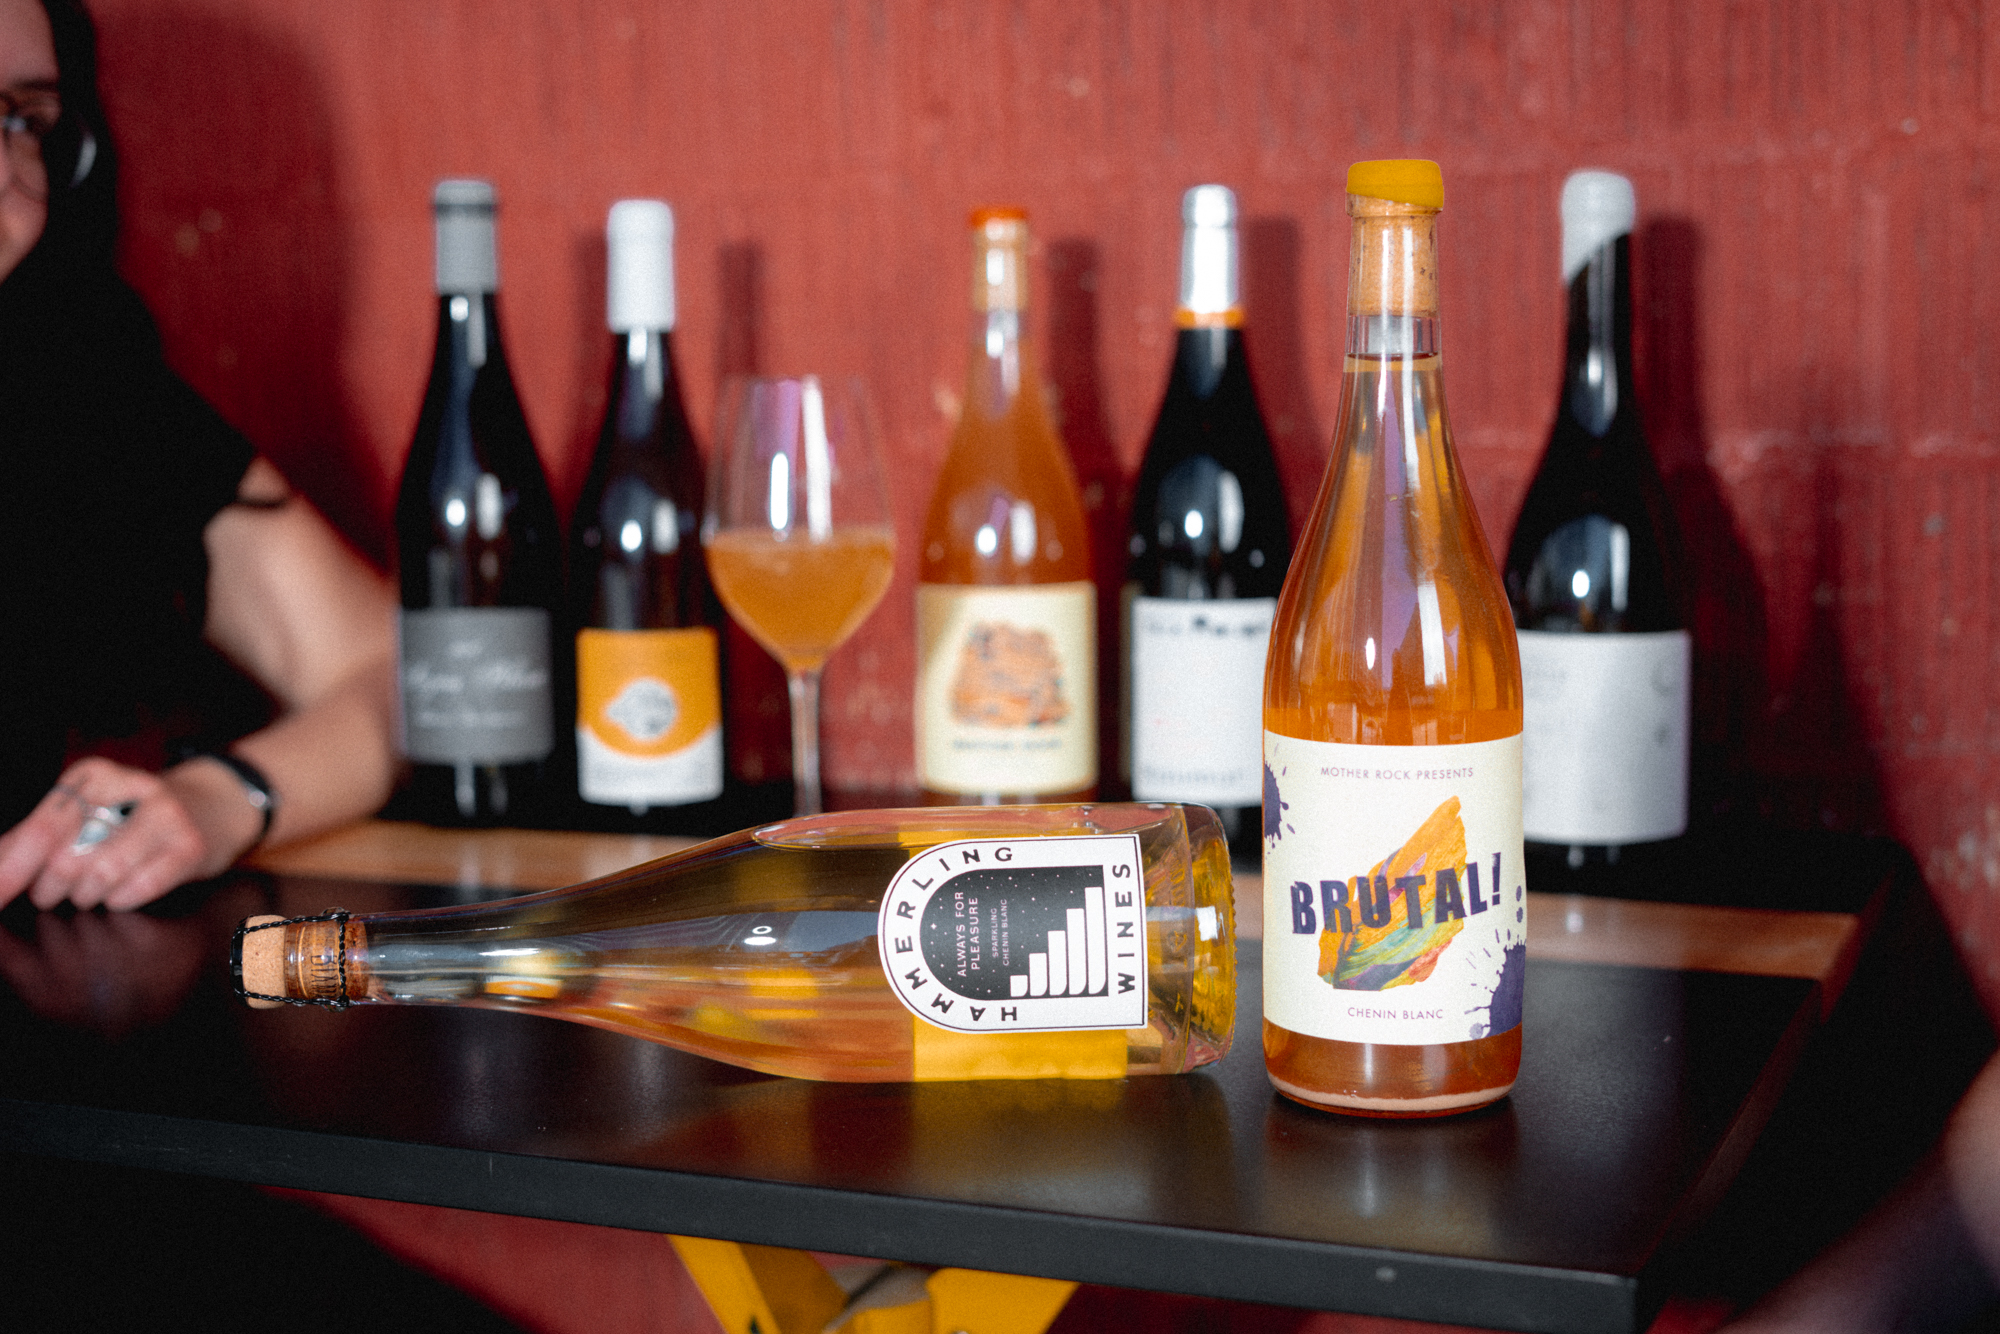 Several bottles of wine including two in the foreground, one horizontal and the other with a label that says BRUTAL, on a wooden table against a red wall.